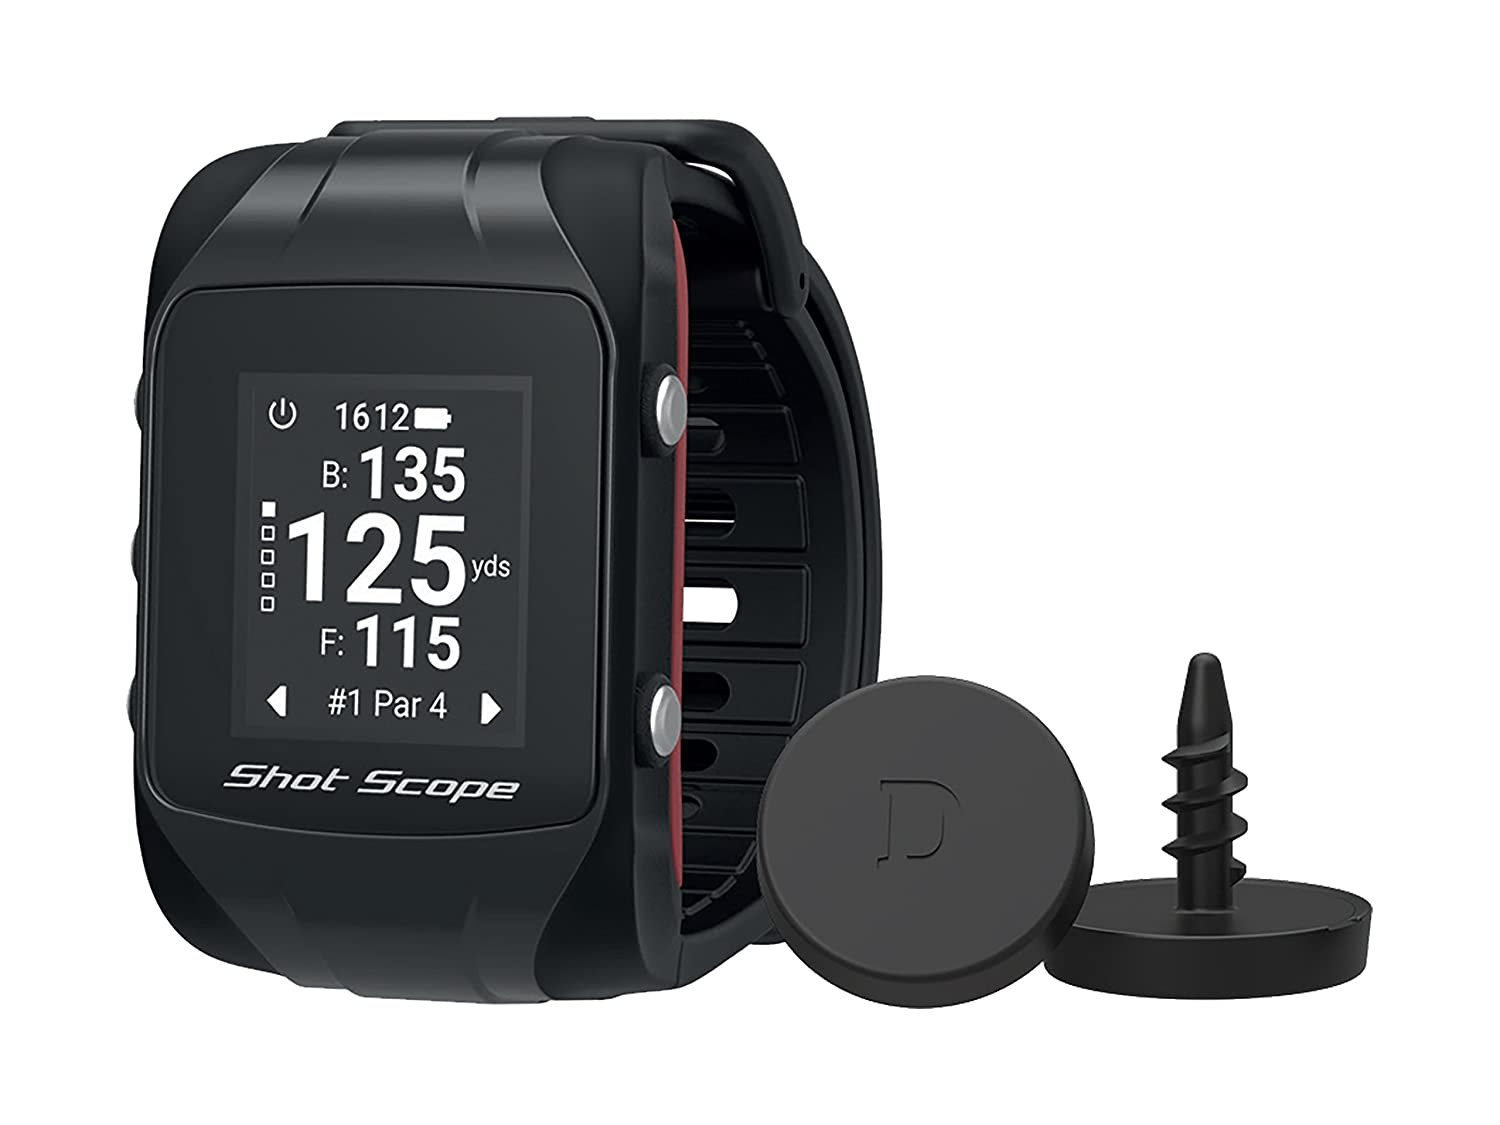 Shot Scope V2 Smart Golf Watch